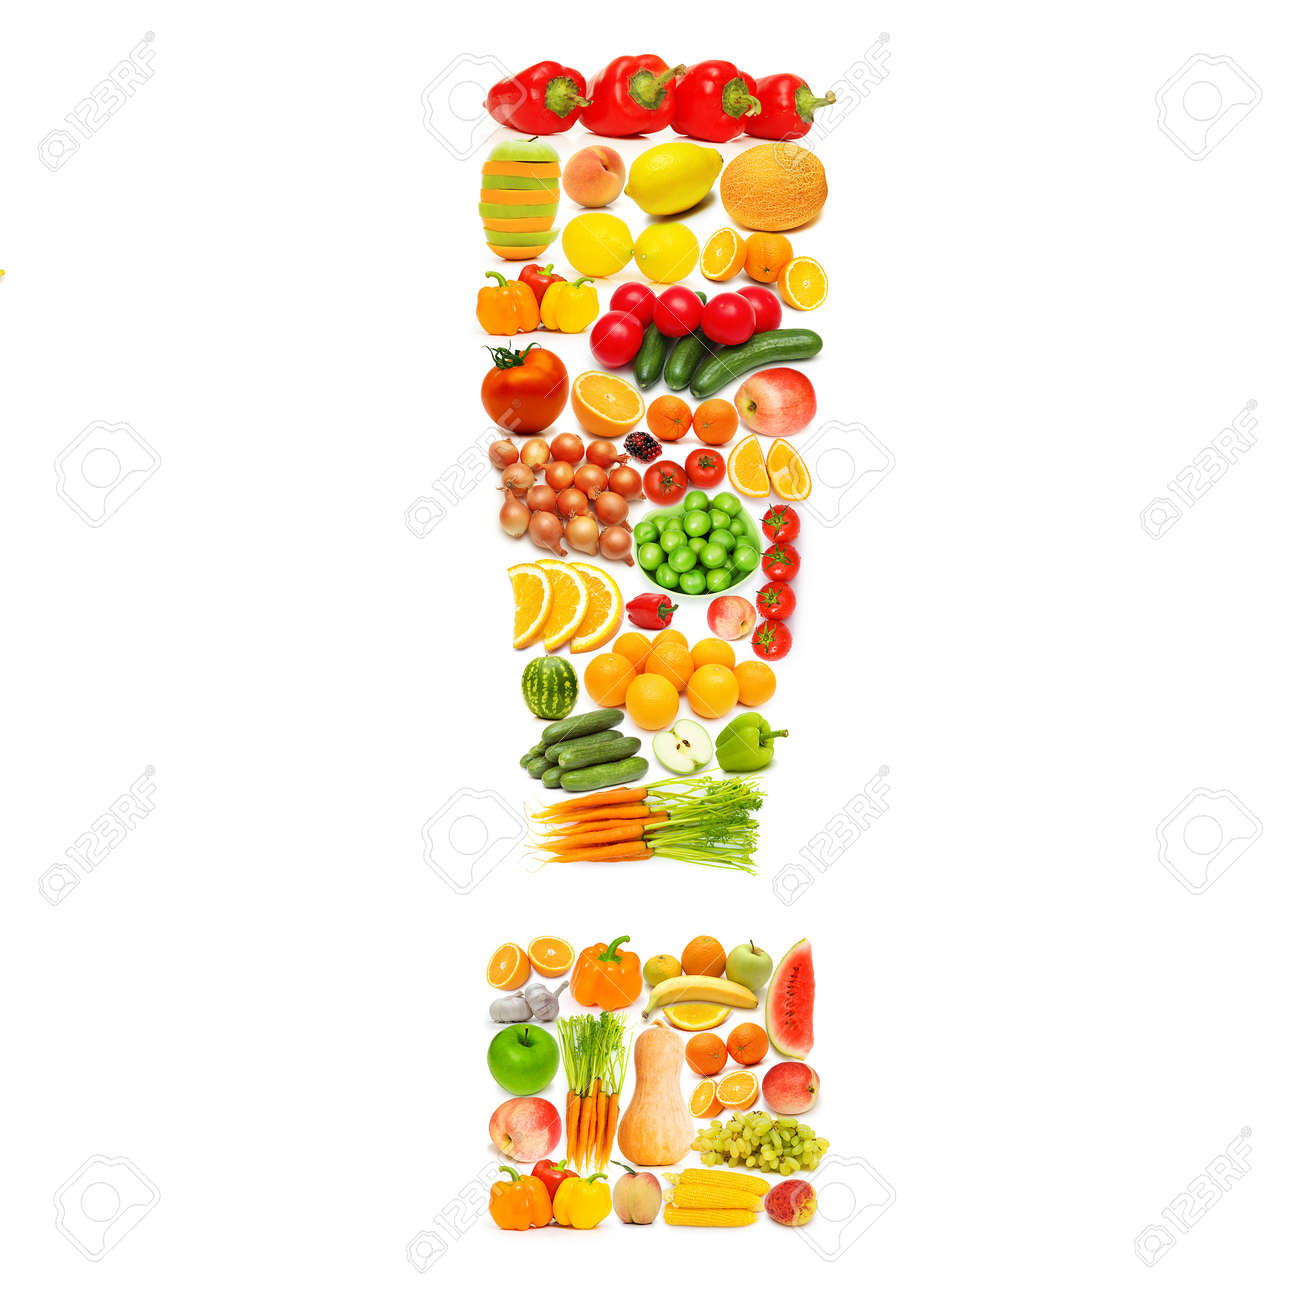 Alphabet made of many fruits and vegetables Stock Photo - 12226071